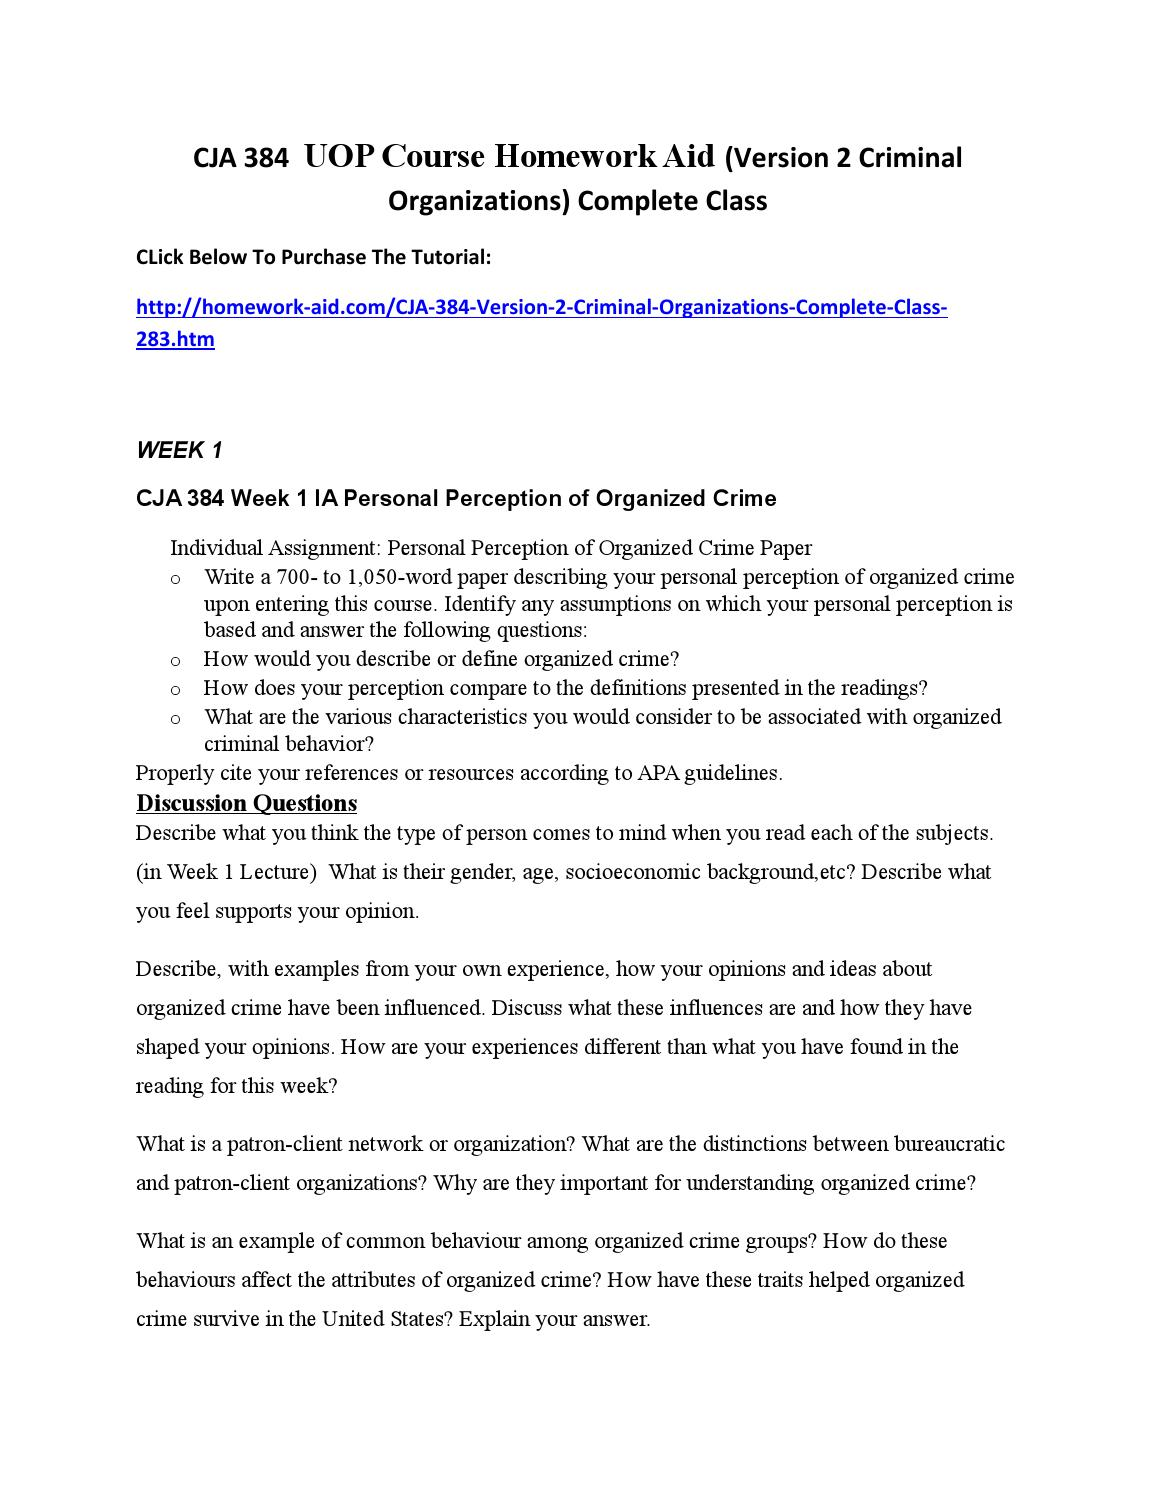 paper describing your personal perception of organized crime upon entering this course Individual assignment: personal perception of organized crime paper write a 700- to 1,050-word paper describing your personal perception of organized crime upon entering this course.